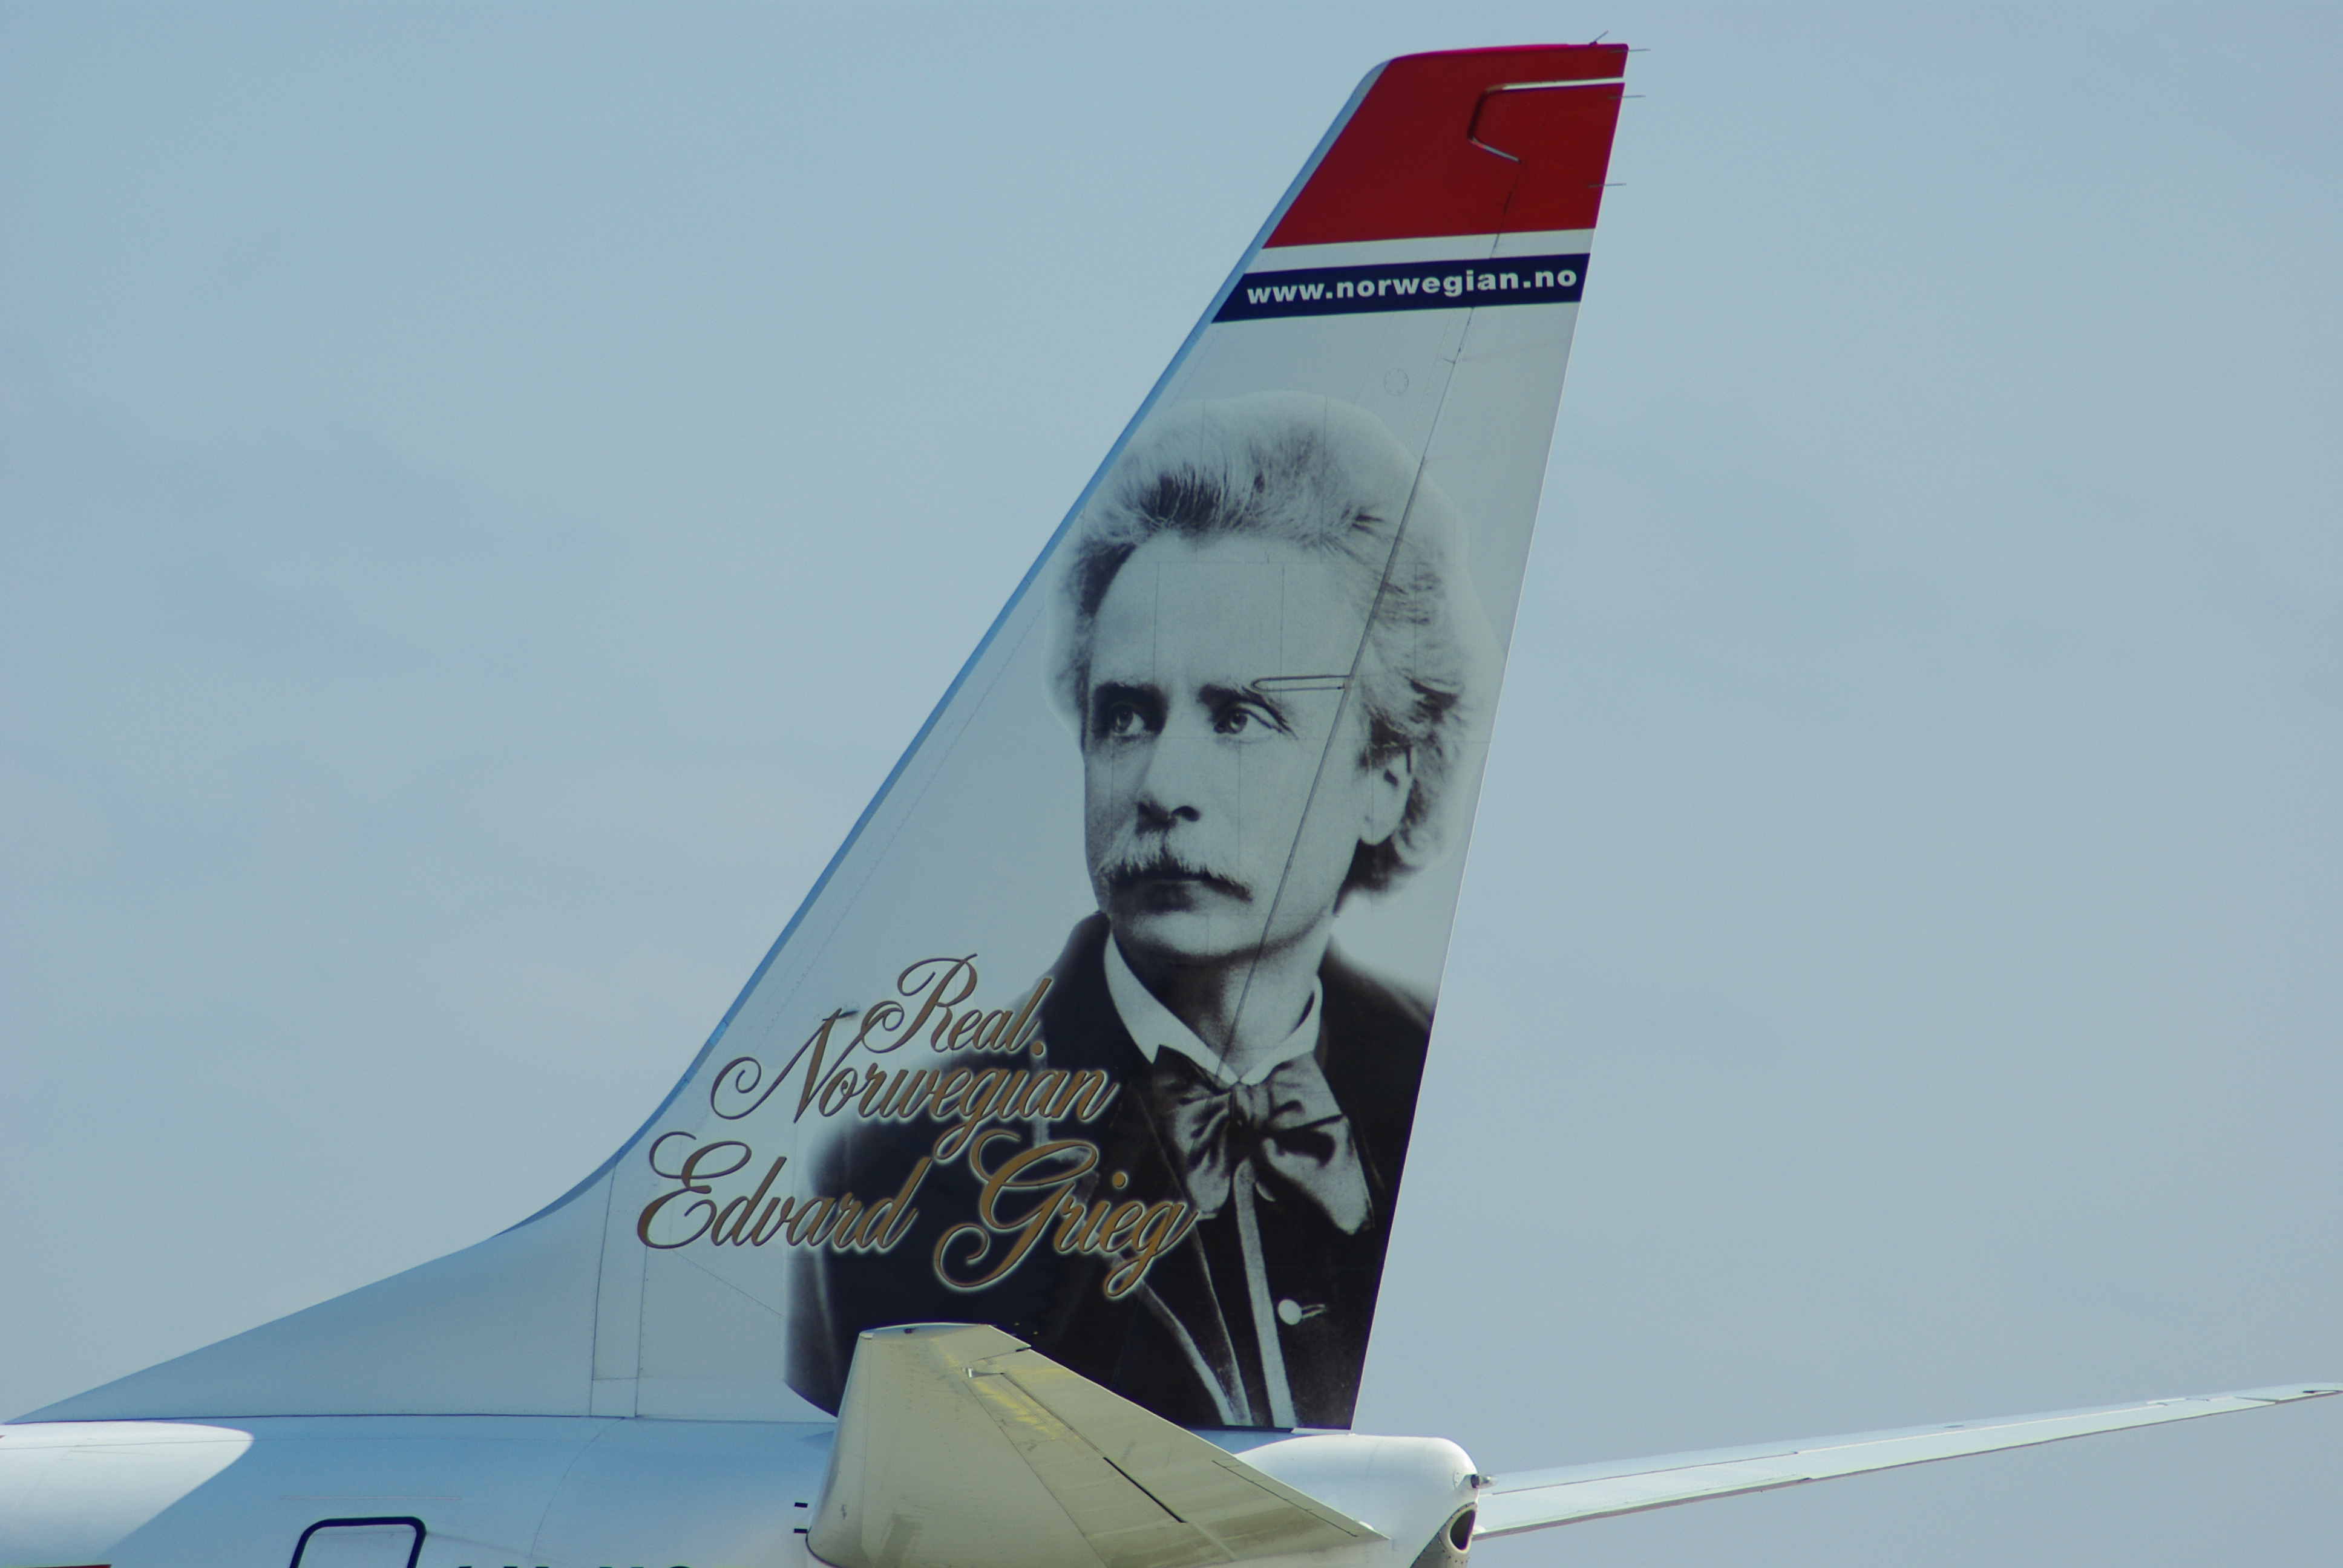 Topic Musique - Page 34 Norwegian_B737-800_Tail_LN-NOB